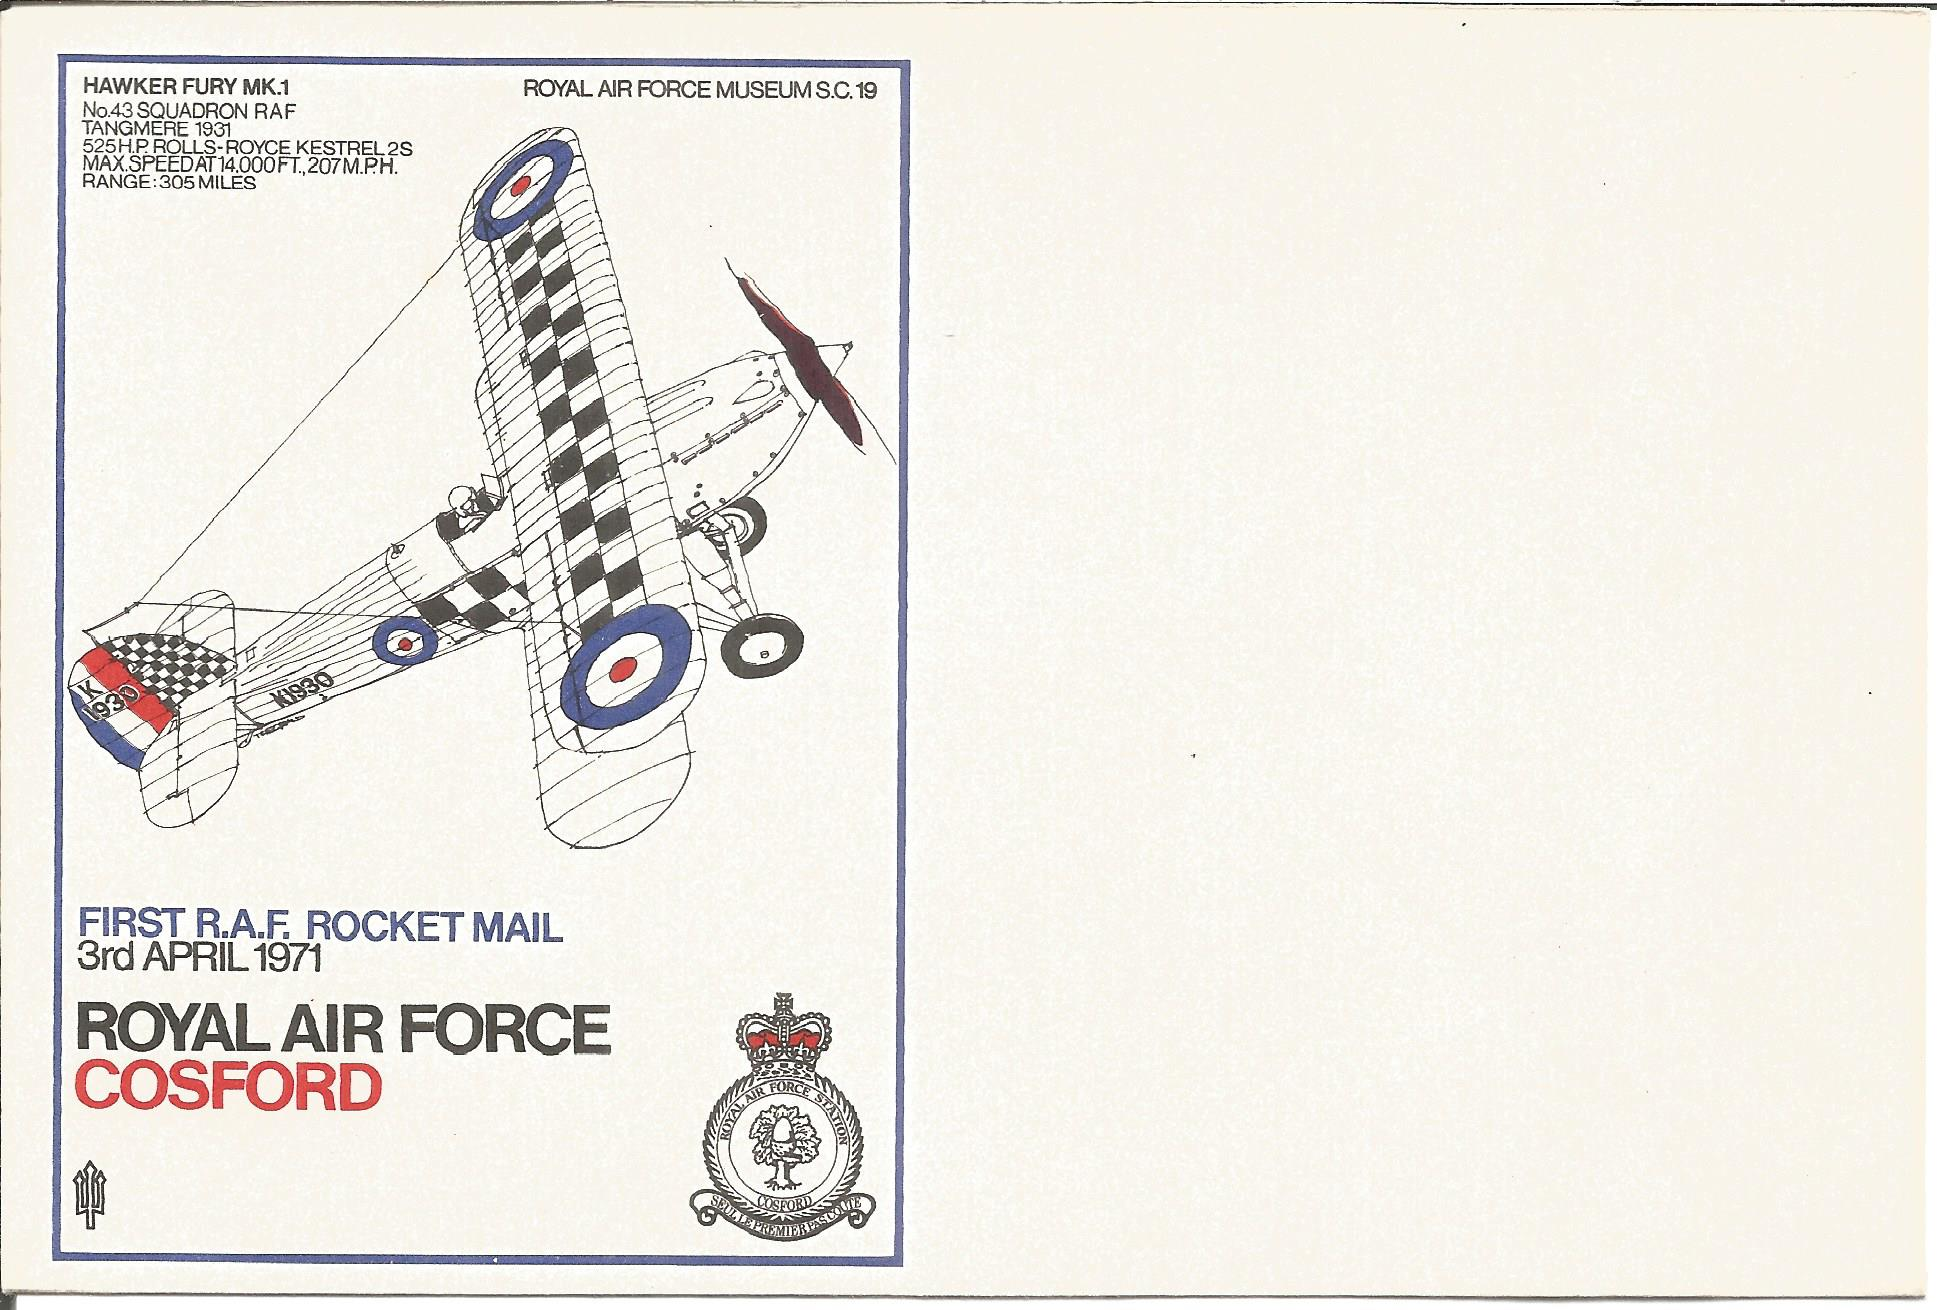 RAF Cosford First RAF Rocket Mail 3rd April 1971 SC19/6 printers colour trials design with missing